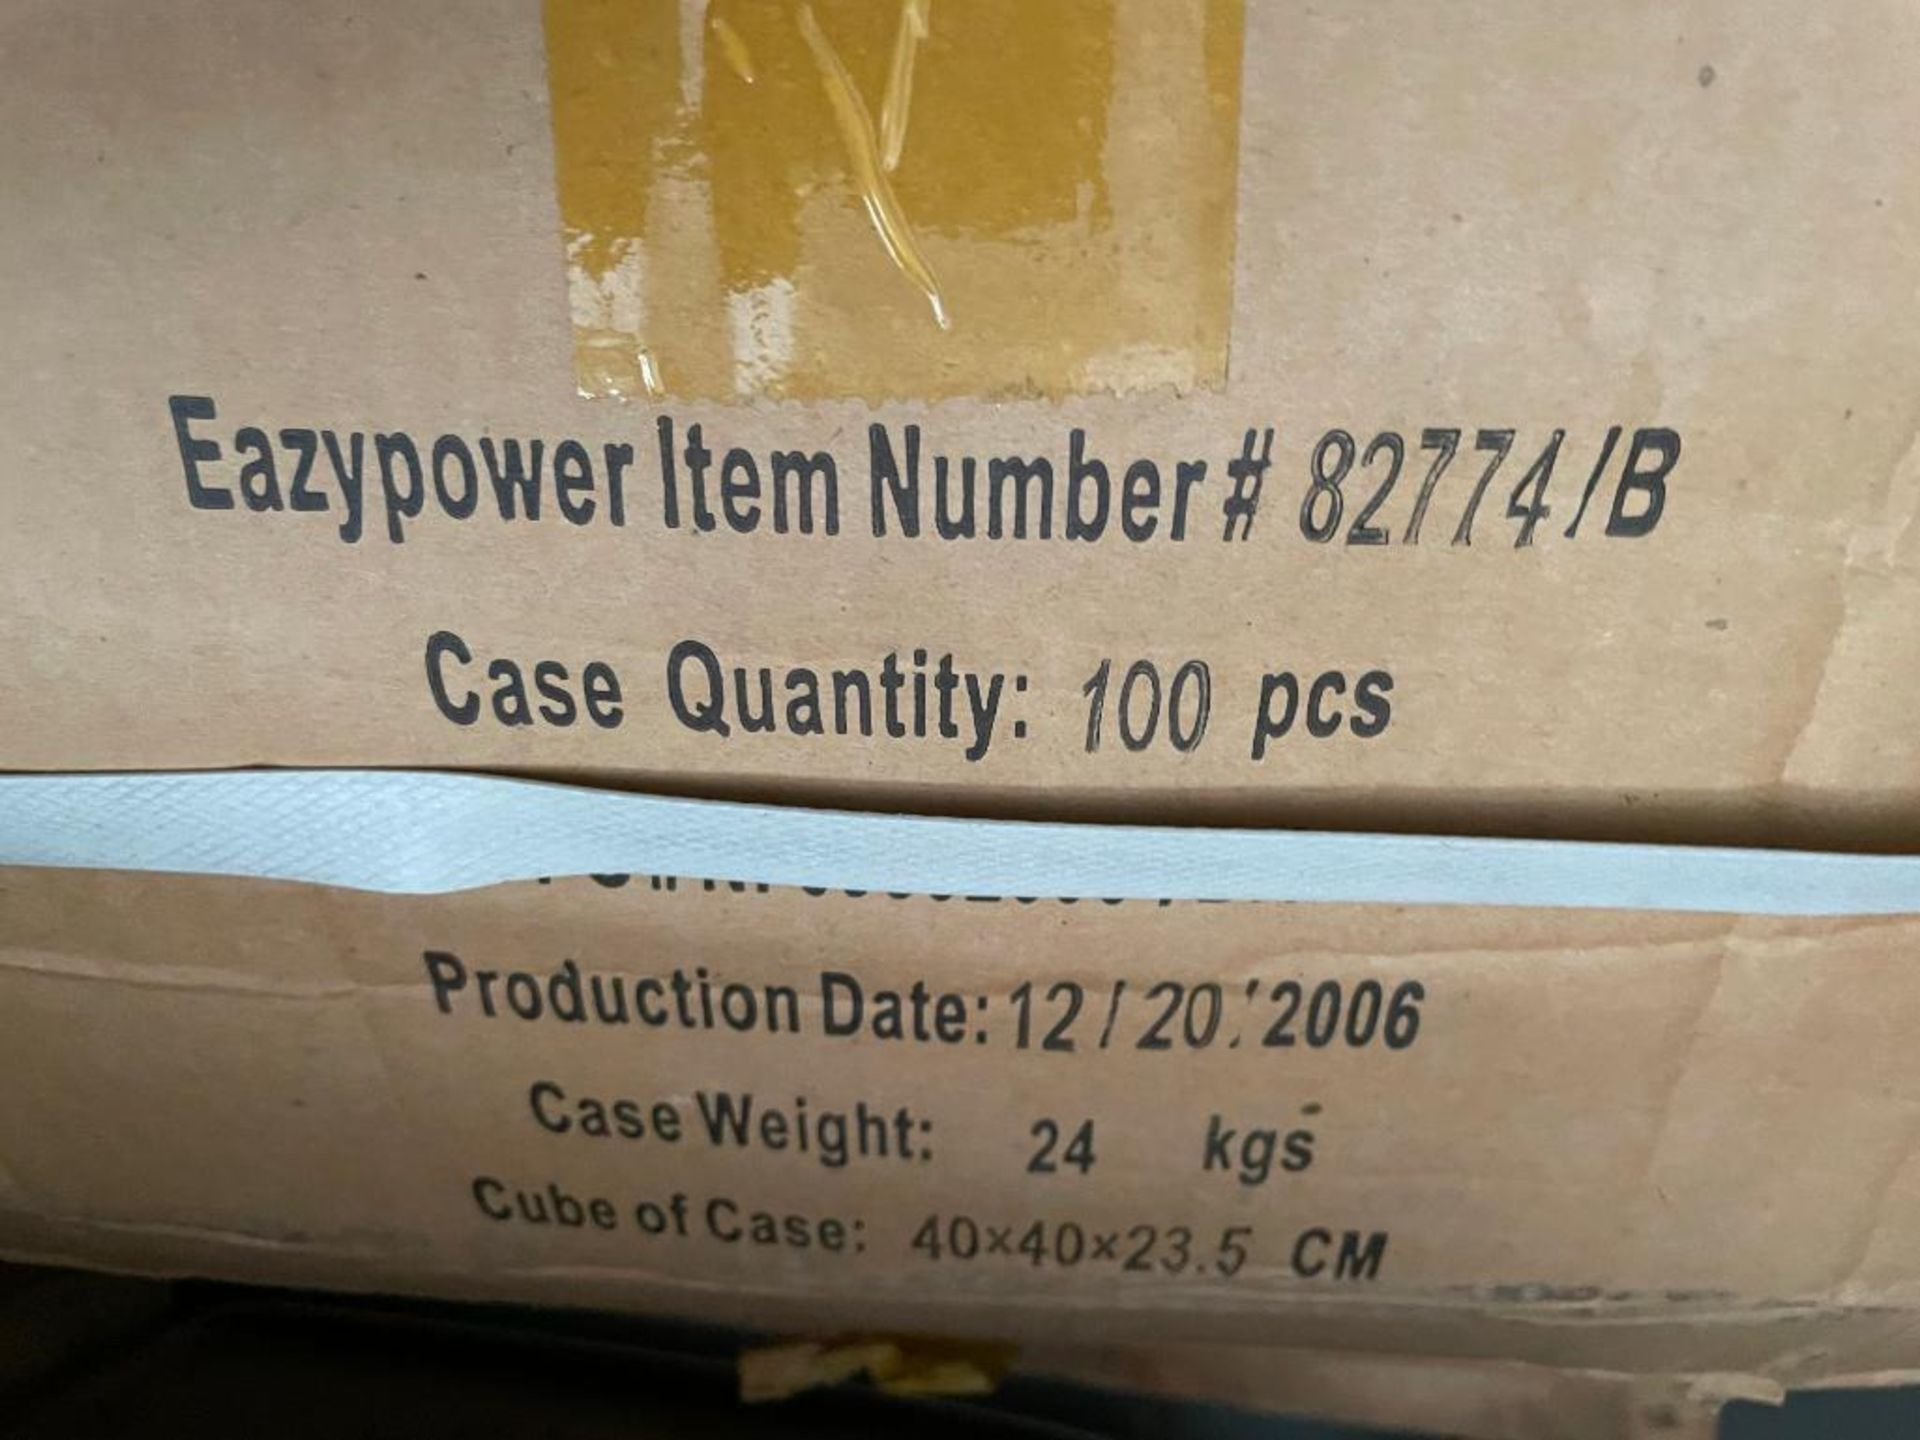 100CT BOX OF 10-IN-1 SILENT RATCHETING SCREWDRIVERS BRAND/MODEL EAZYPOWER 82774 ADDITIONAL INFO TOTA - Image 3 of 3